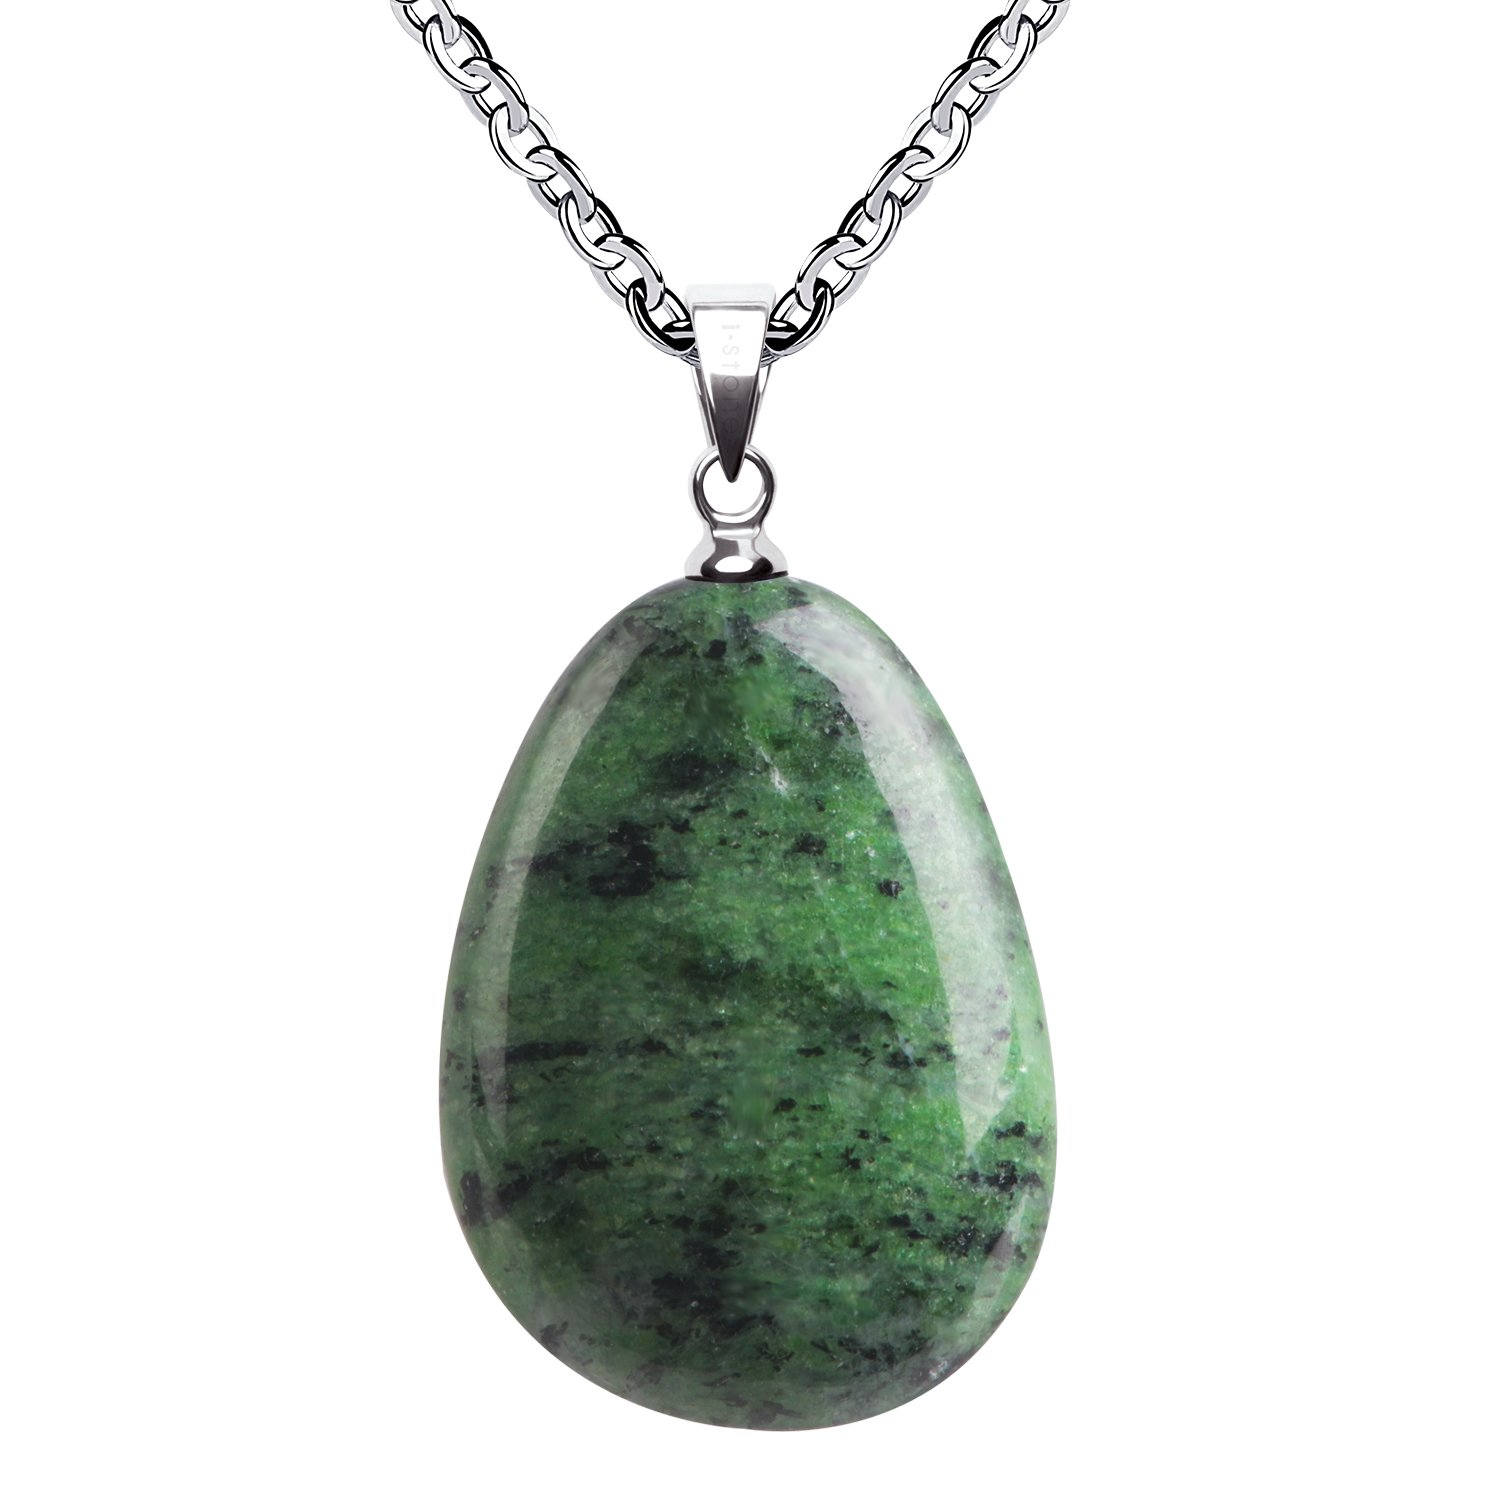 iSTONE Natural Gemstone Water Drop Green Jade Pendant Necklace with Stainless Steel Chain 20 Inch¡­